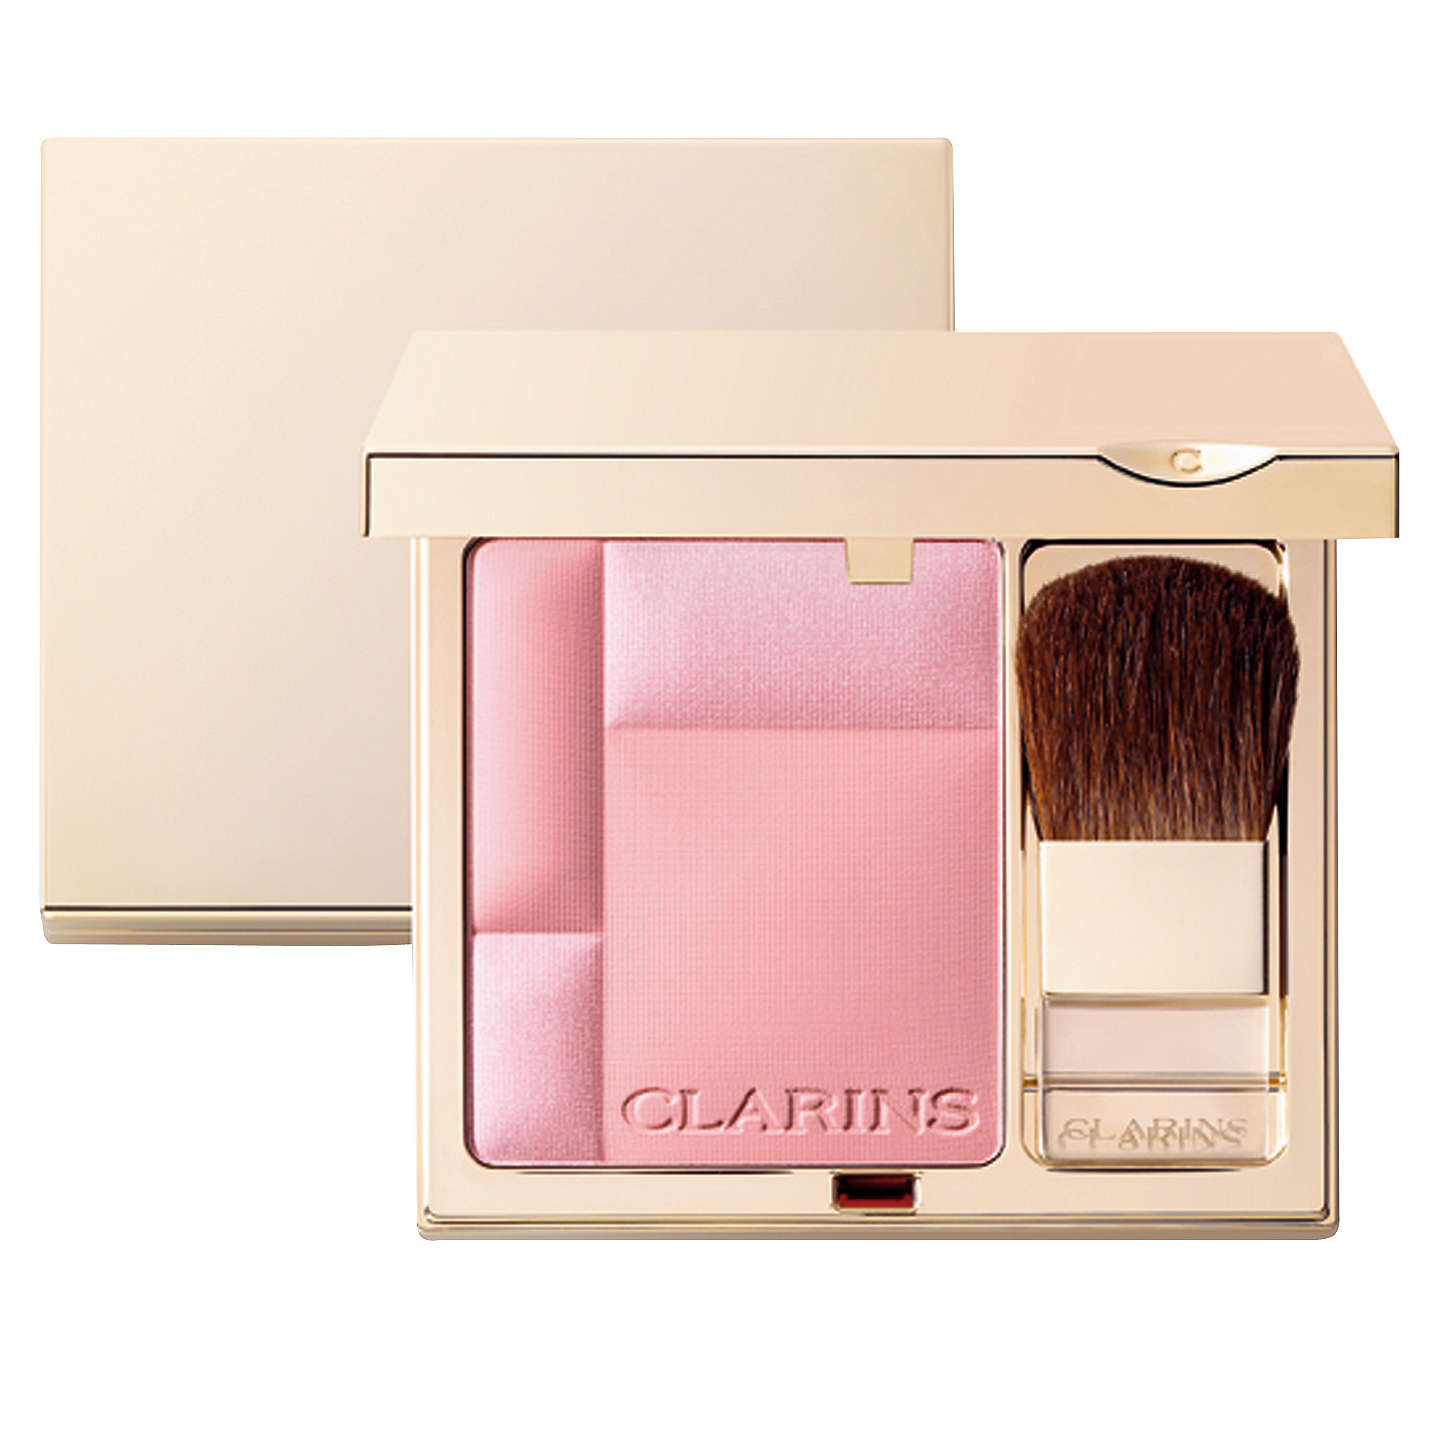 BuyClarins Blush Prodige Illuminating Cheek Colour, 03 Miami Pink Online at johnlewis.com